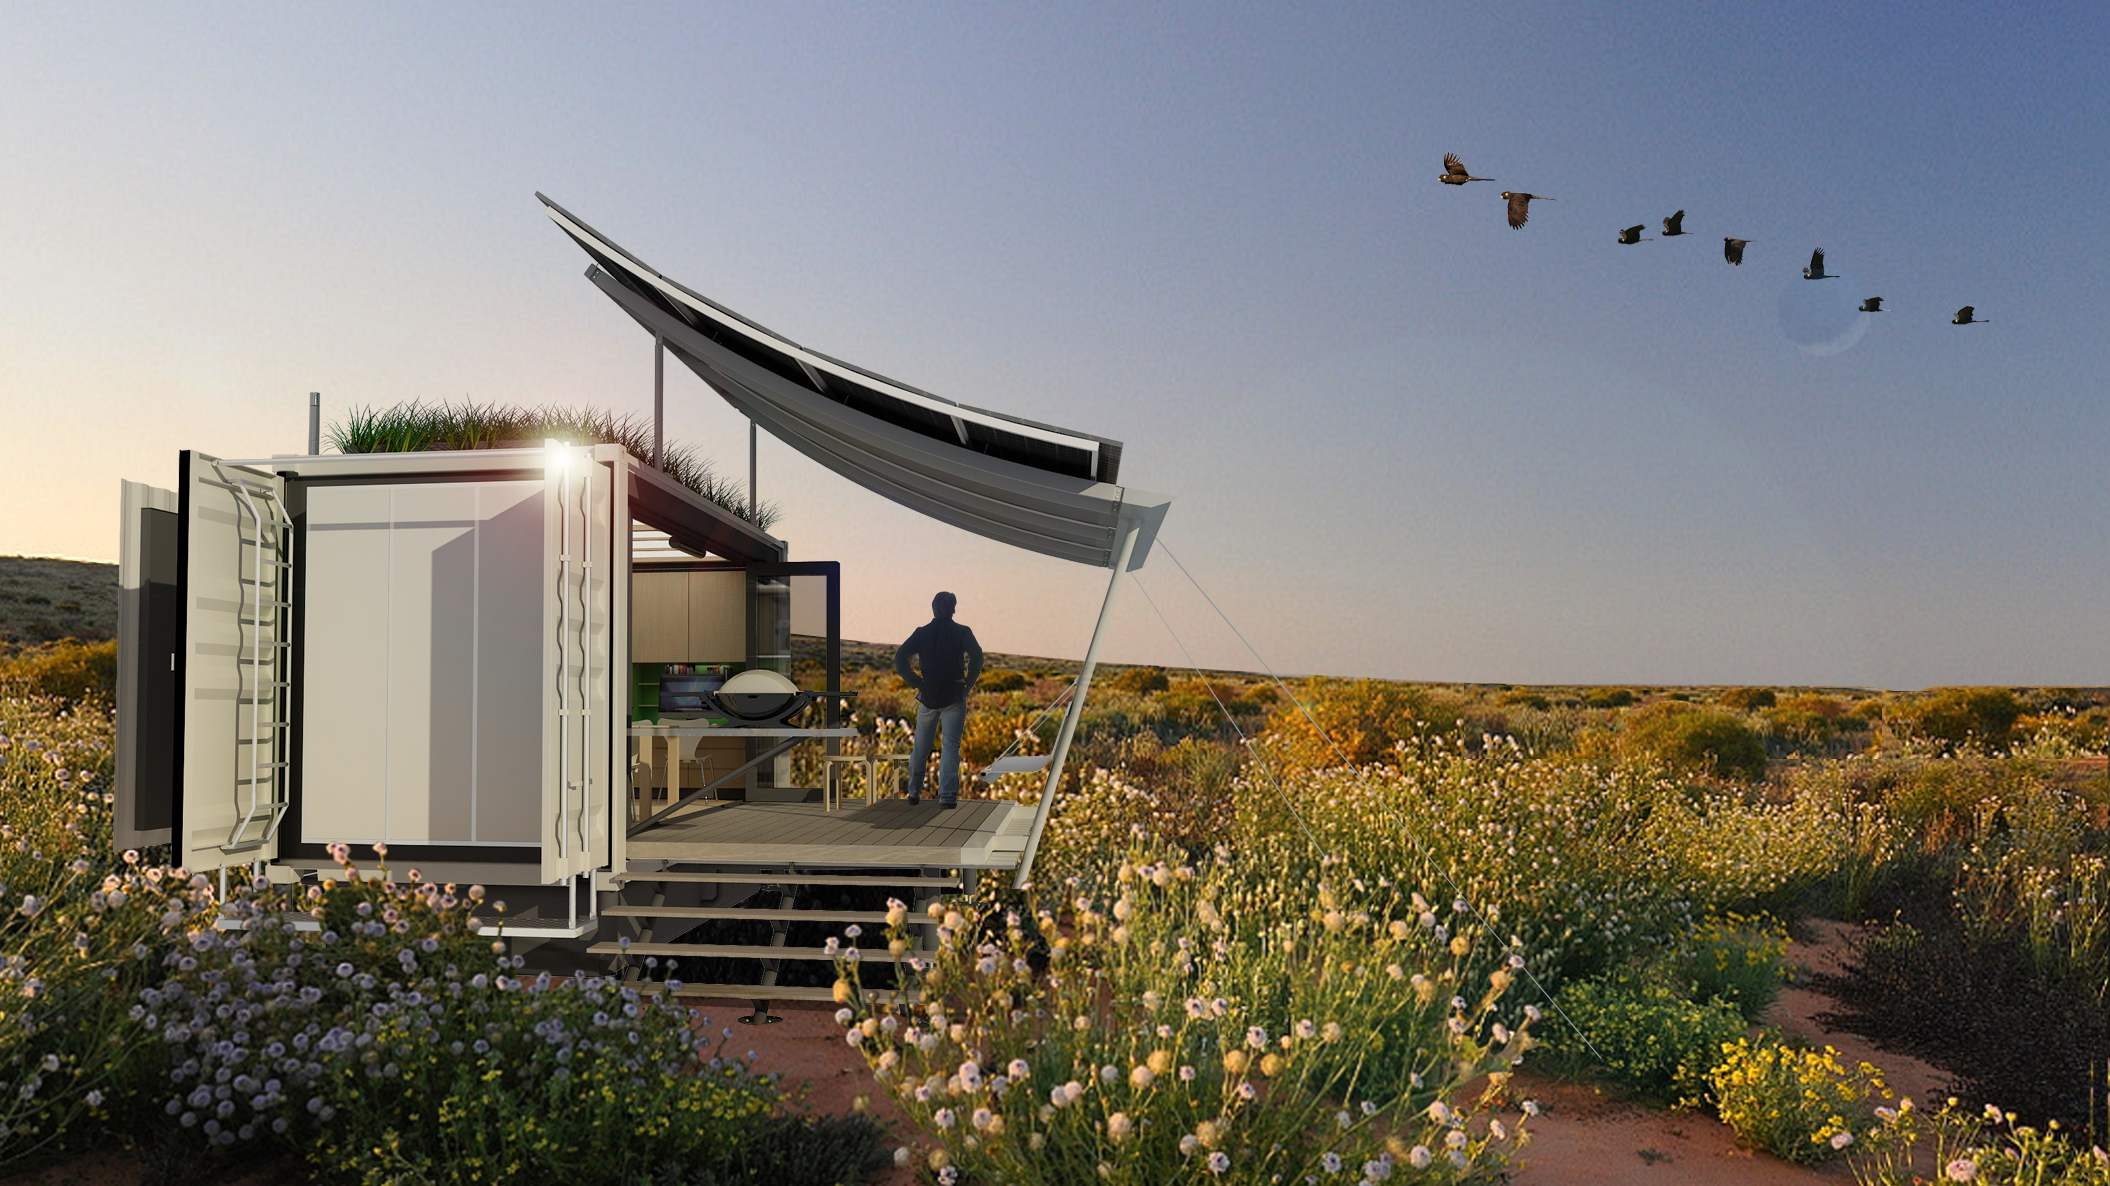 G-pod unveils expandable shipping container-based off-grid home